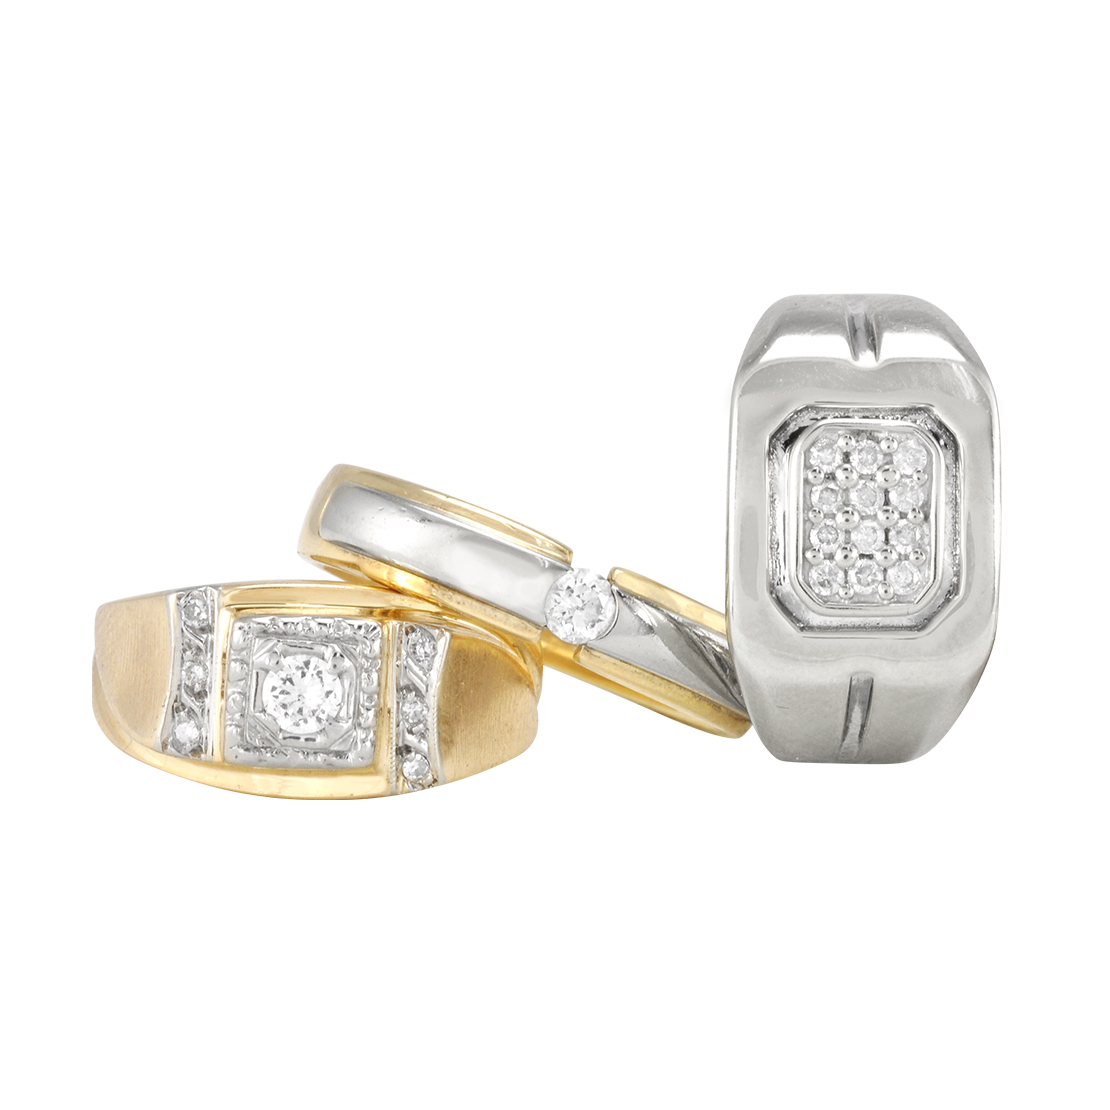 Assorted Men's Diamond Rings